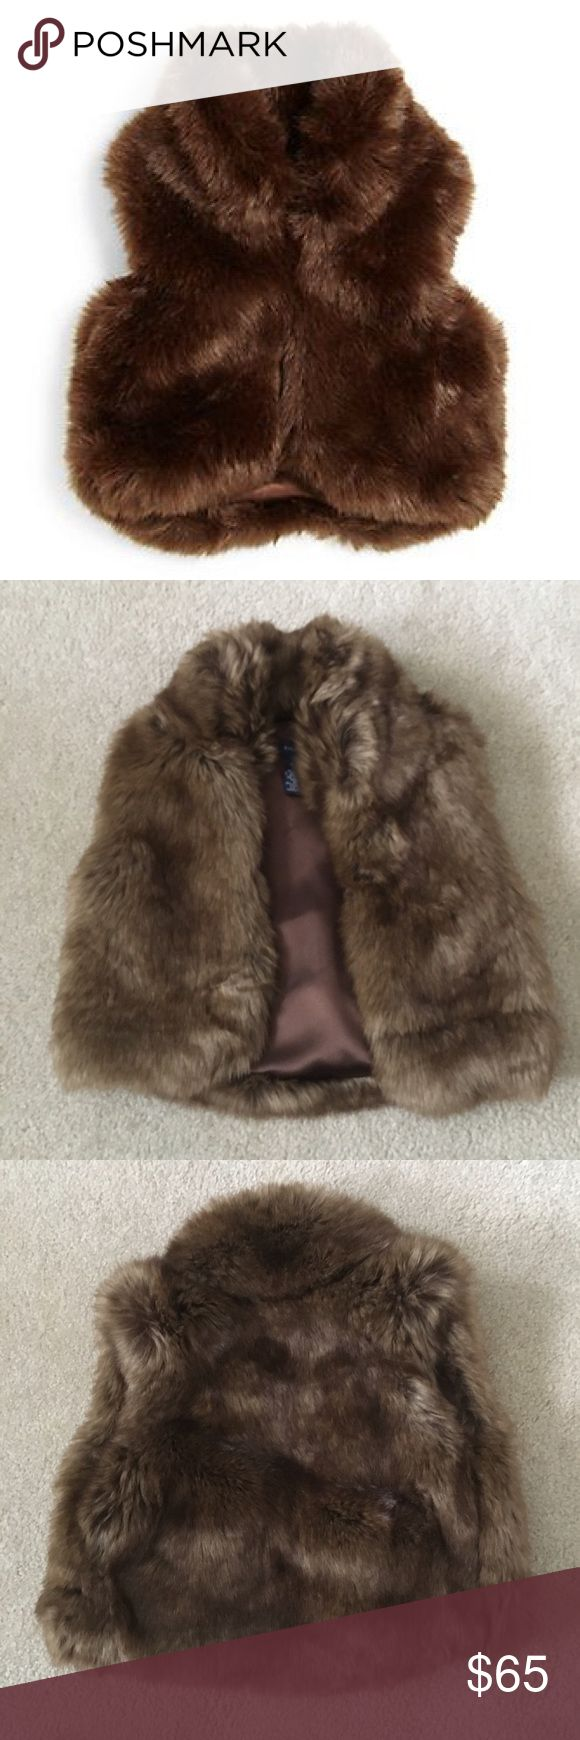 Ralph Lauren Toddler Girl Brown Faux Fur Vest NWT Ralph Laurent faux fur vest, loved this but clearly my very picky daughter did not.  She didn't share my love for RL clothing.  Was purchased at the RL outlet, runs in the smaller side, I bought it for her when she was 4. Ralph Lauren Jackets & Coats Vests